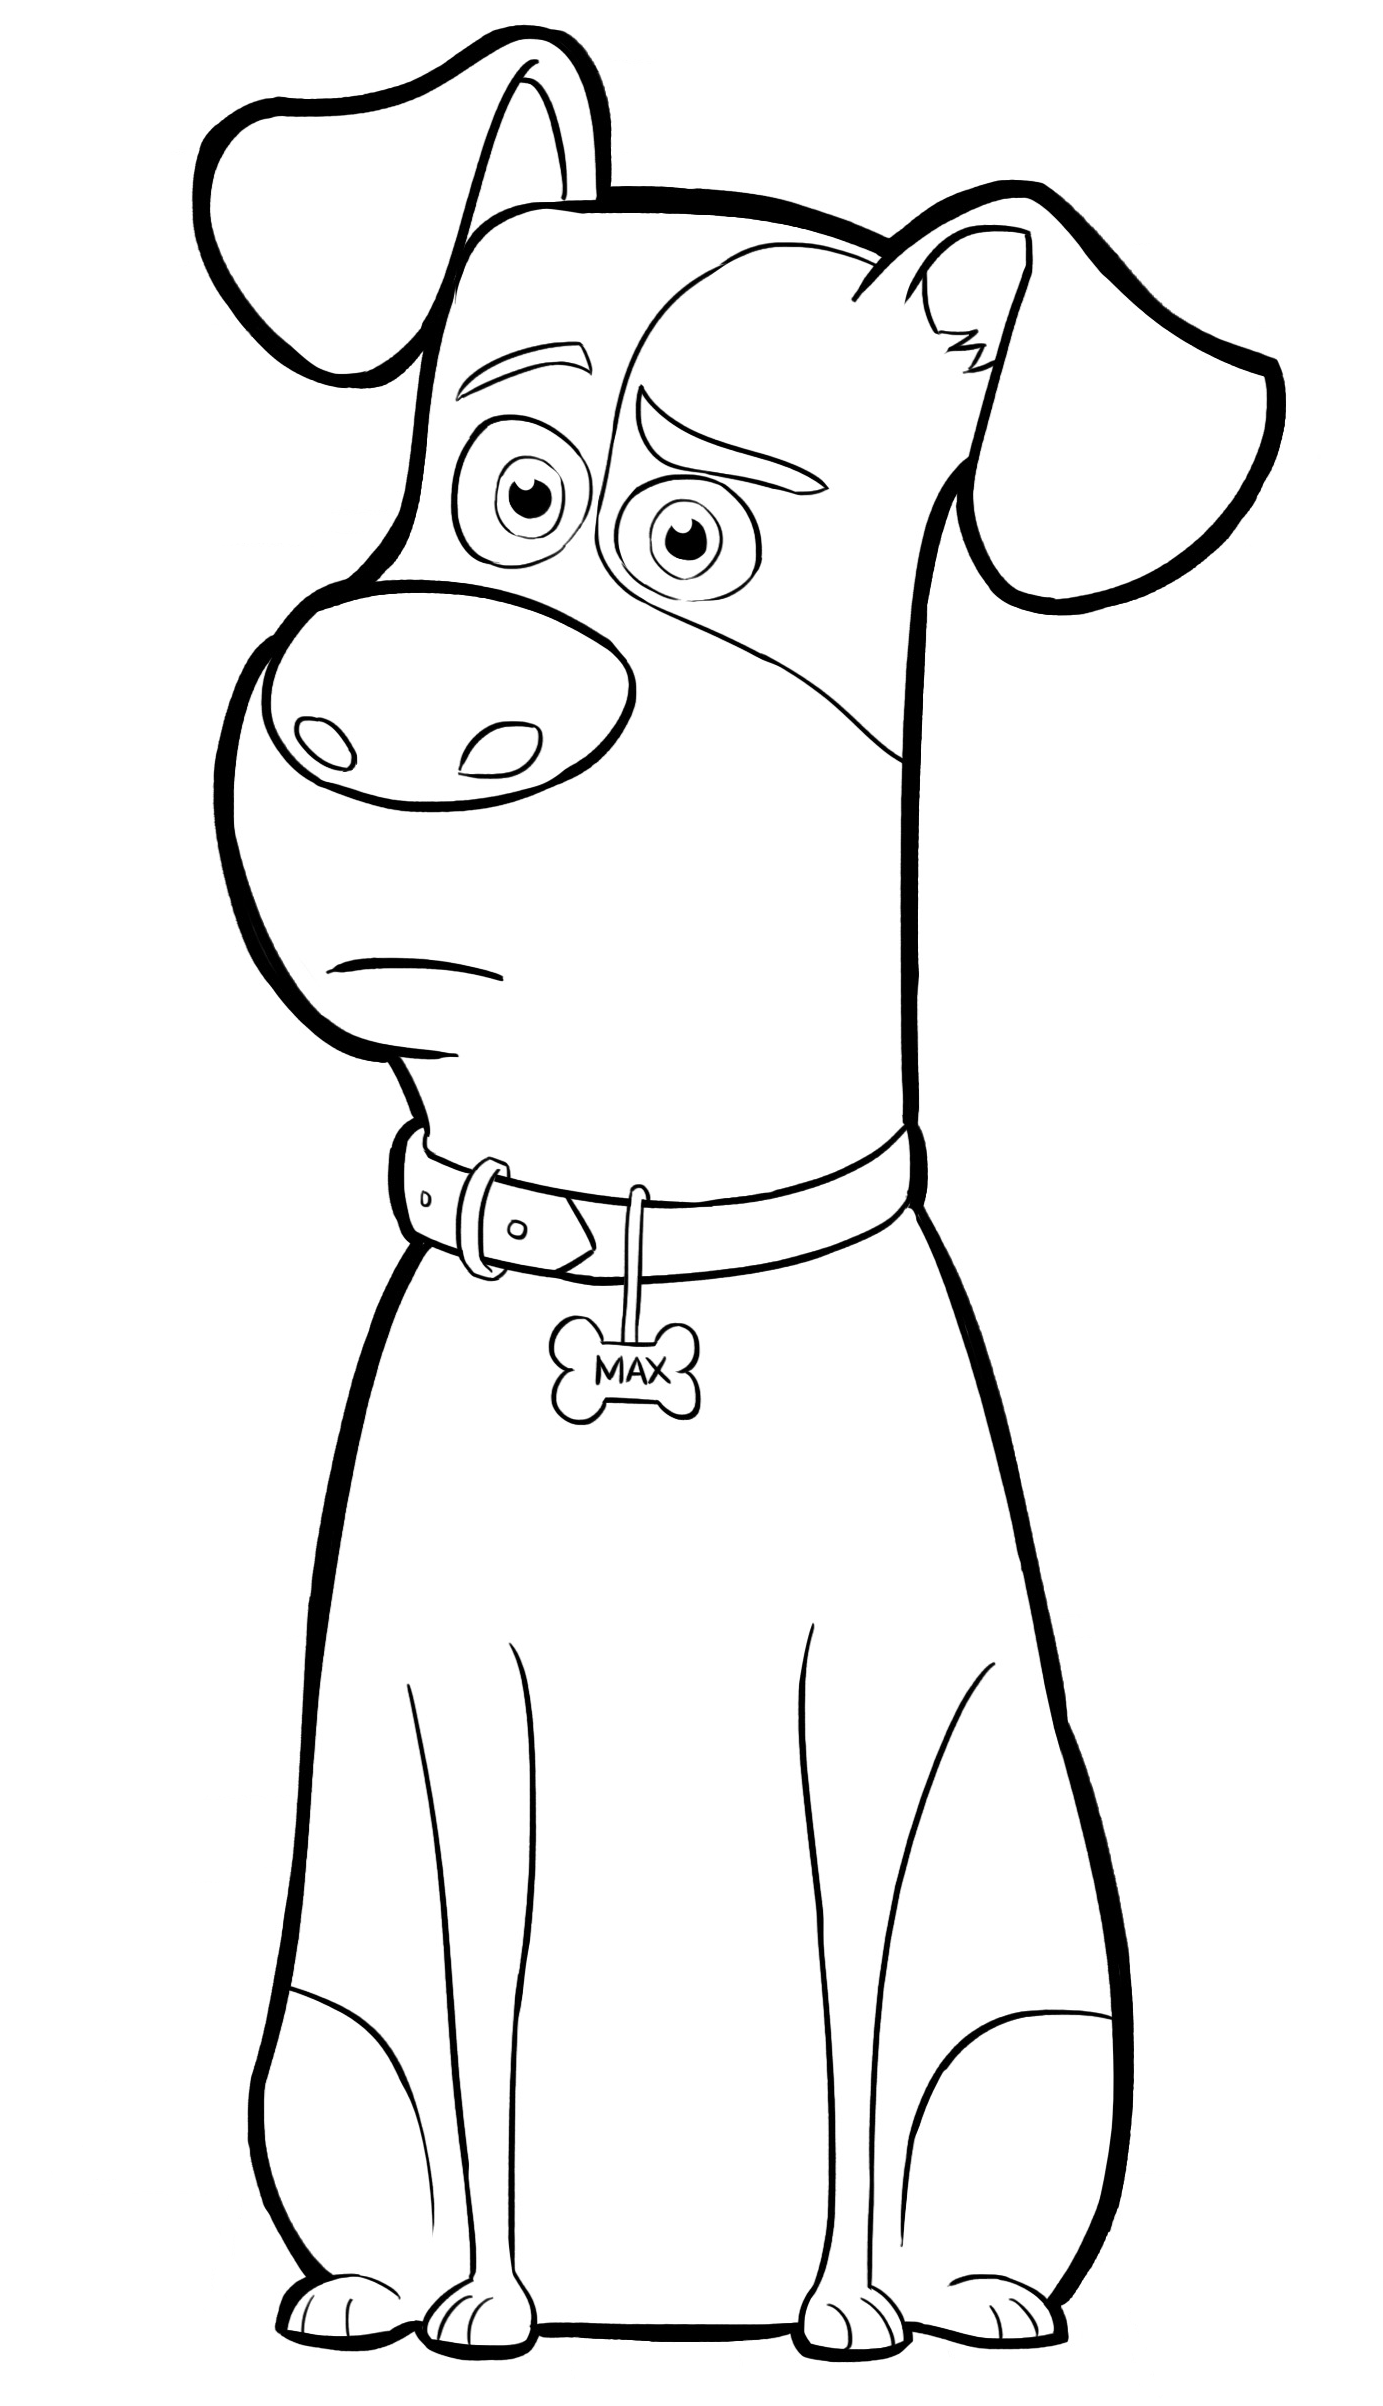 colouring dog 9 puppy coloring pages jpg ai illustrator download colouring dog